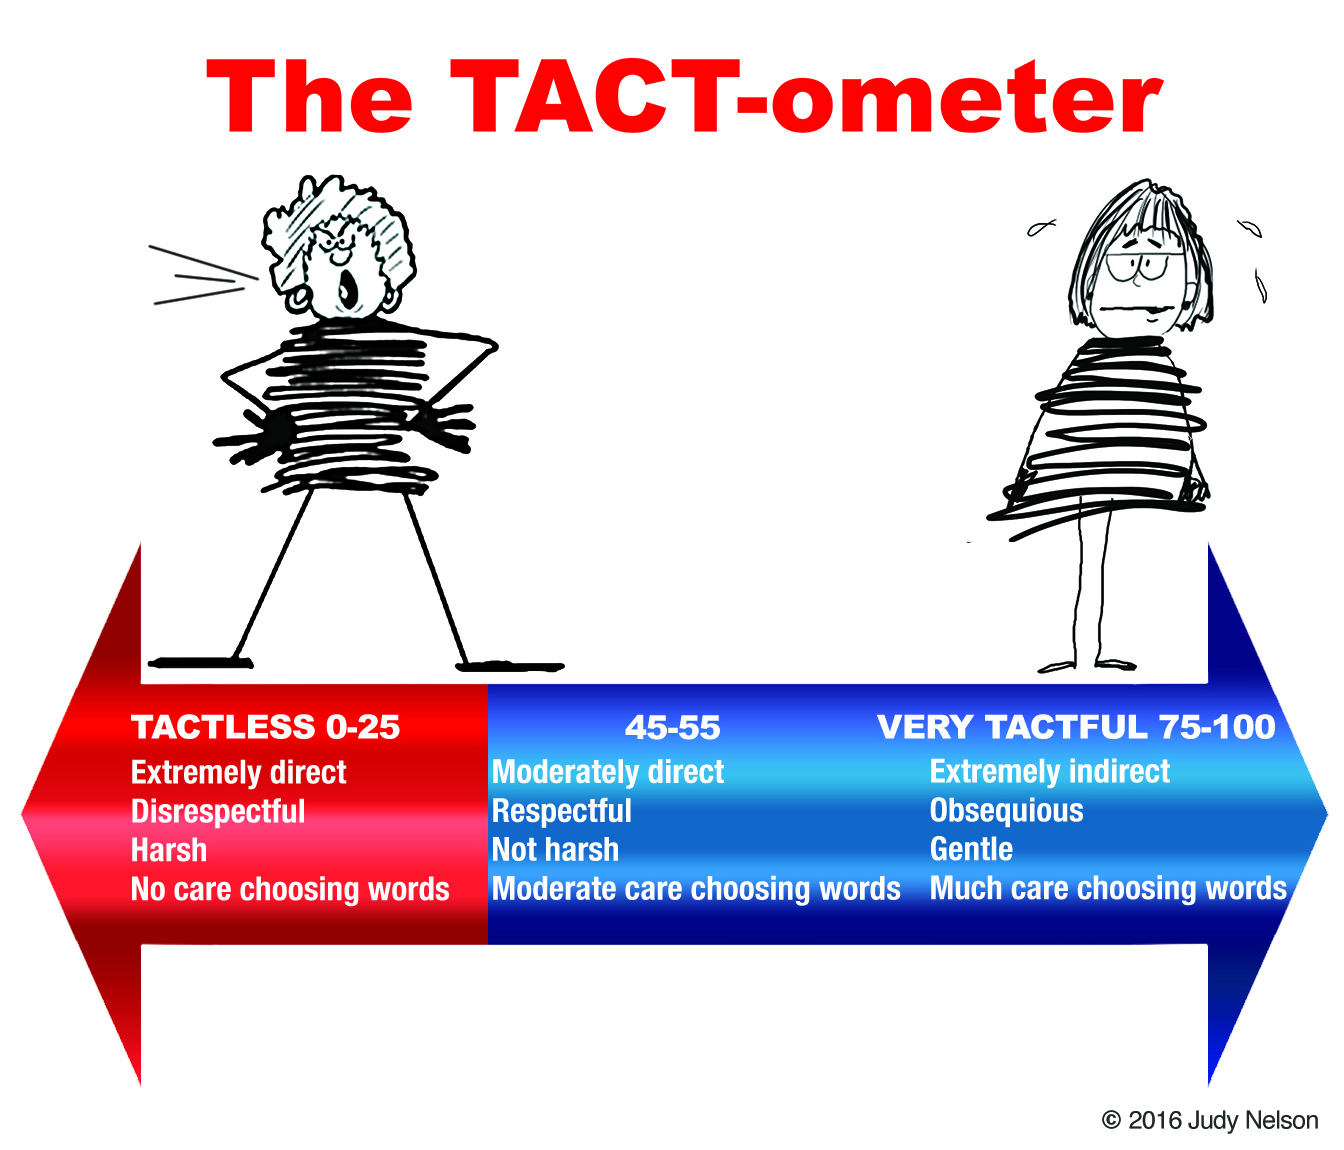 What's Your TACT-ometer Reading?